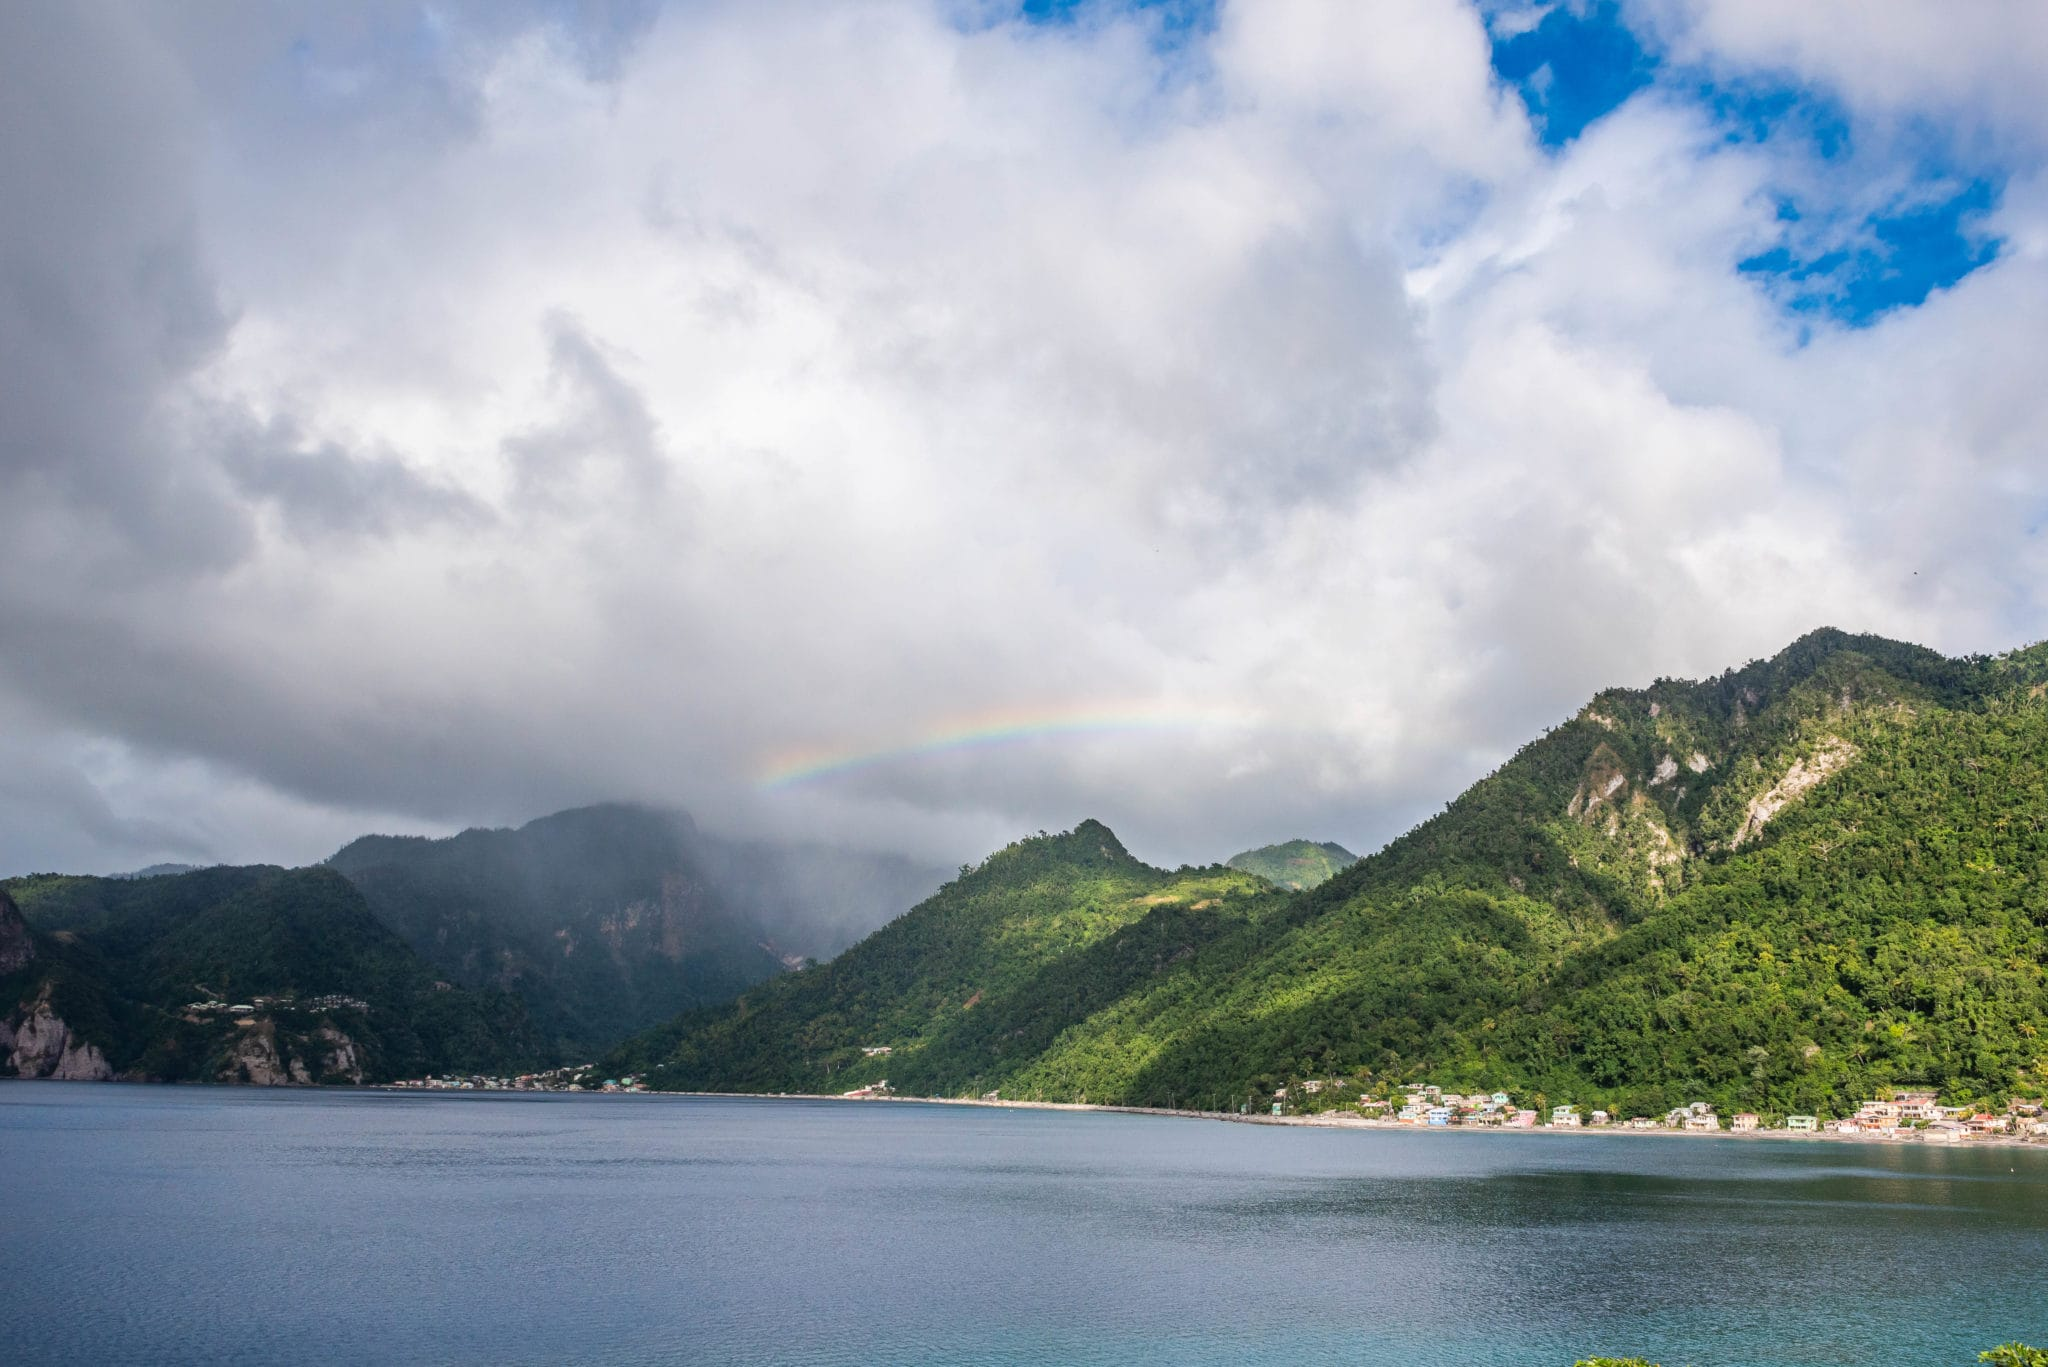 Dominica's Rainbows Have a Green Pot of Gold at Their End